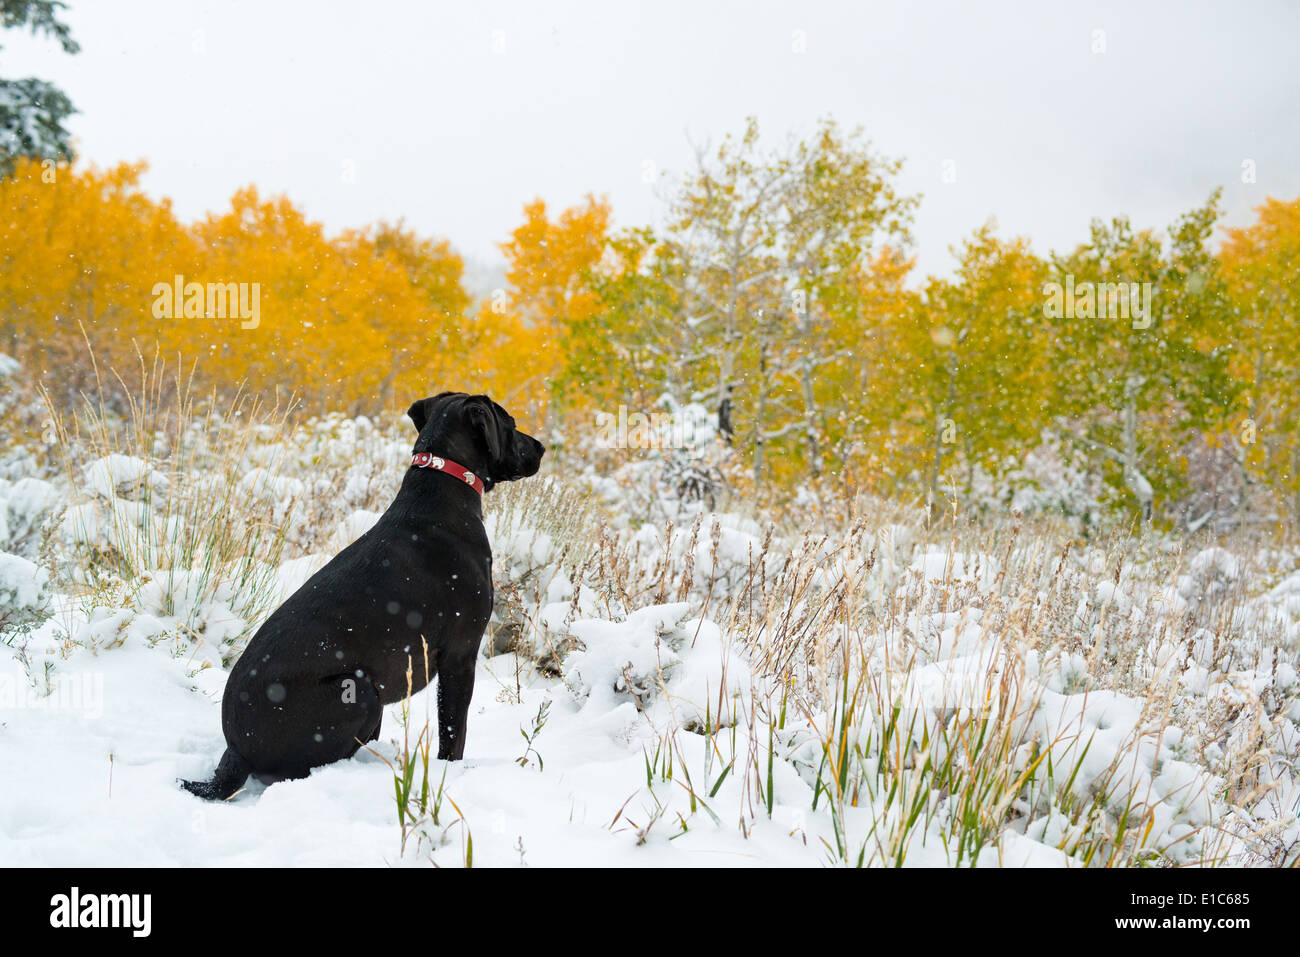 A black labrador dog in snow. - Stock Image